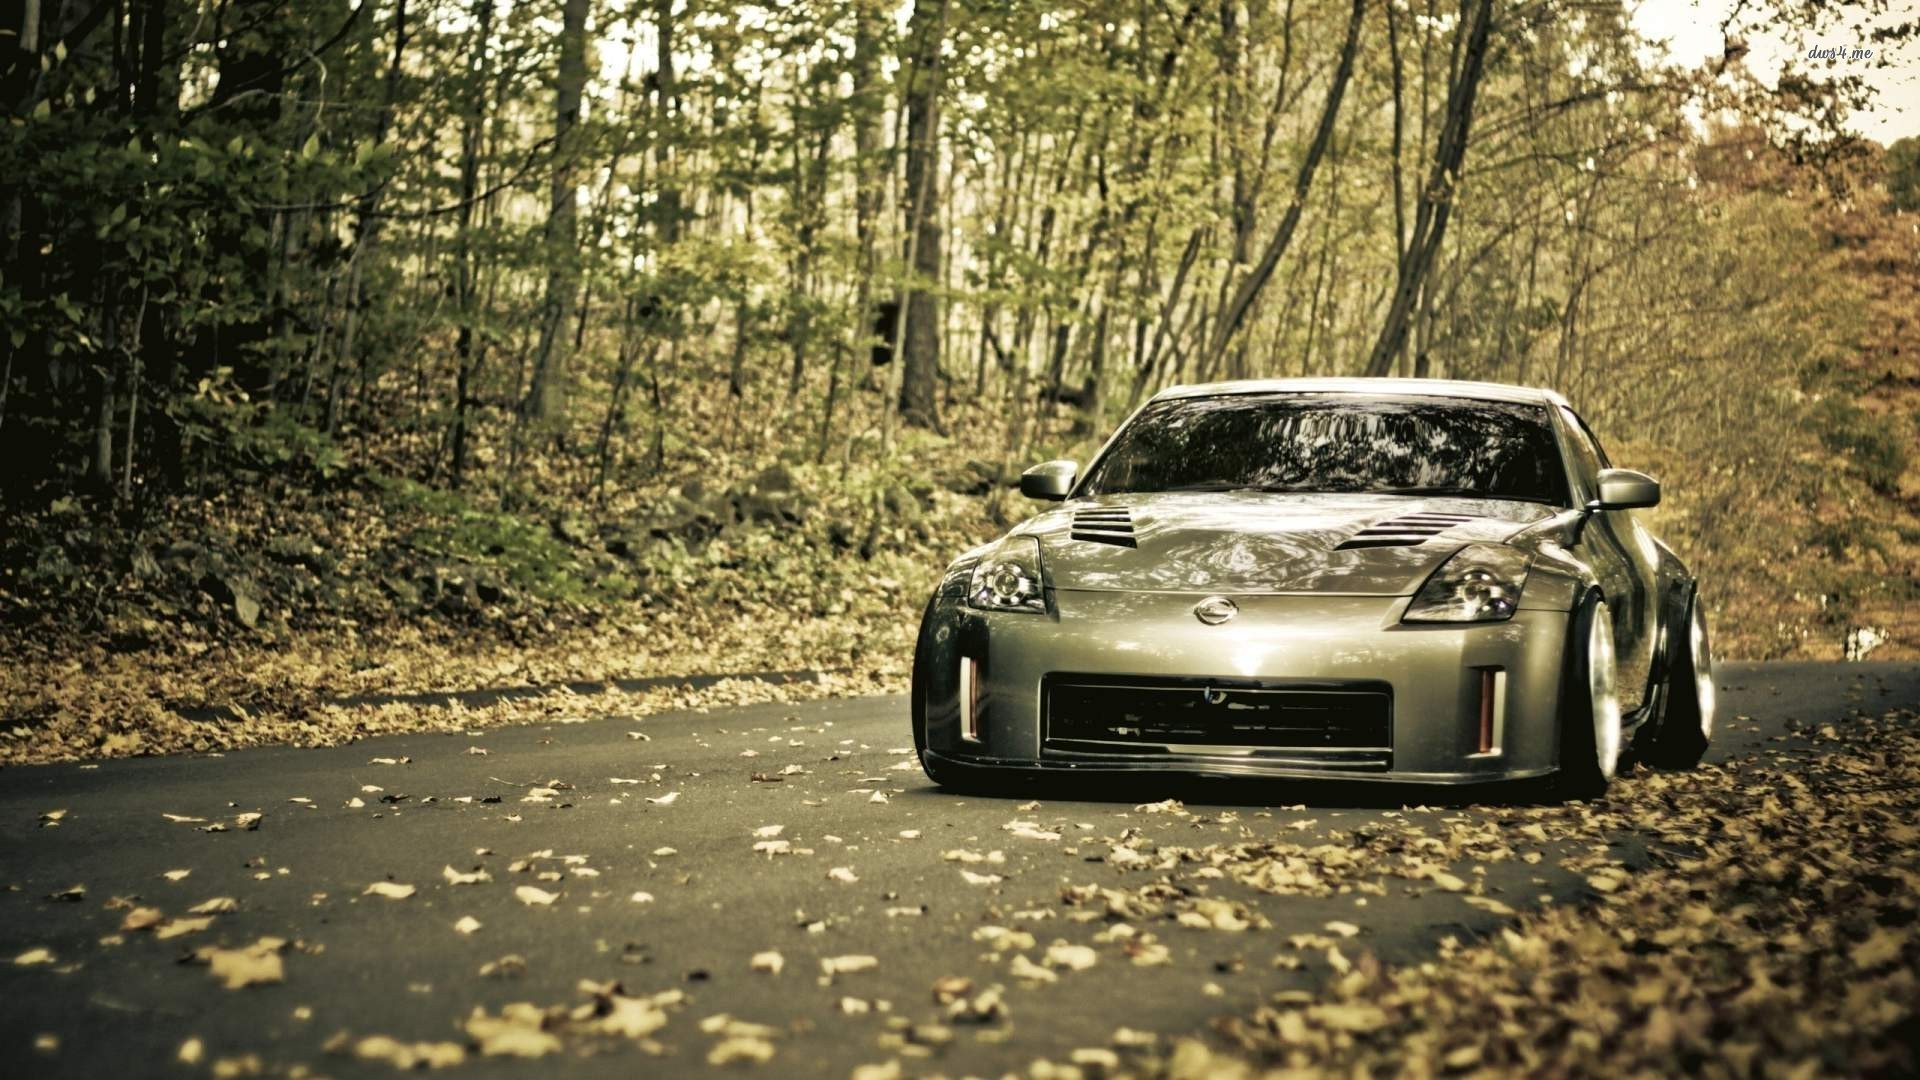 Free Download Nissan 350z Wallpapers High Quality Download